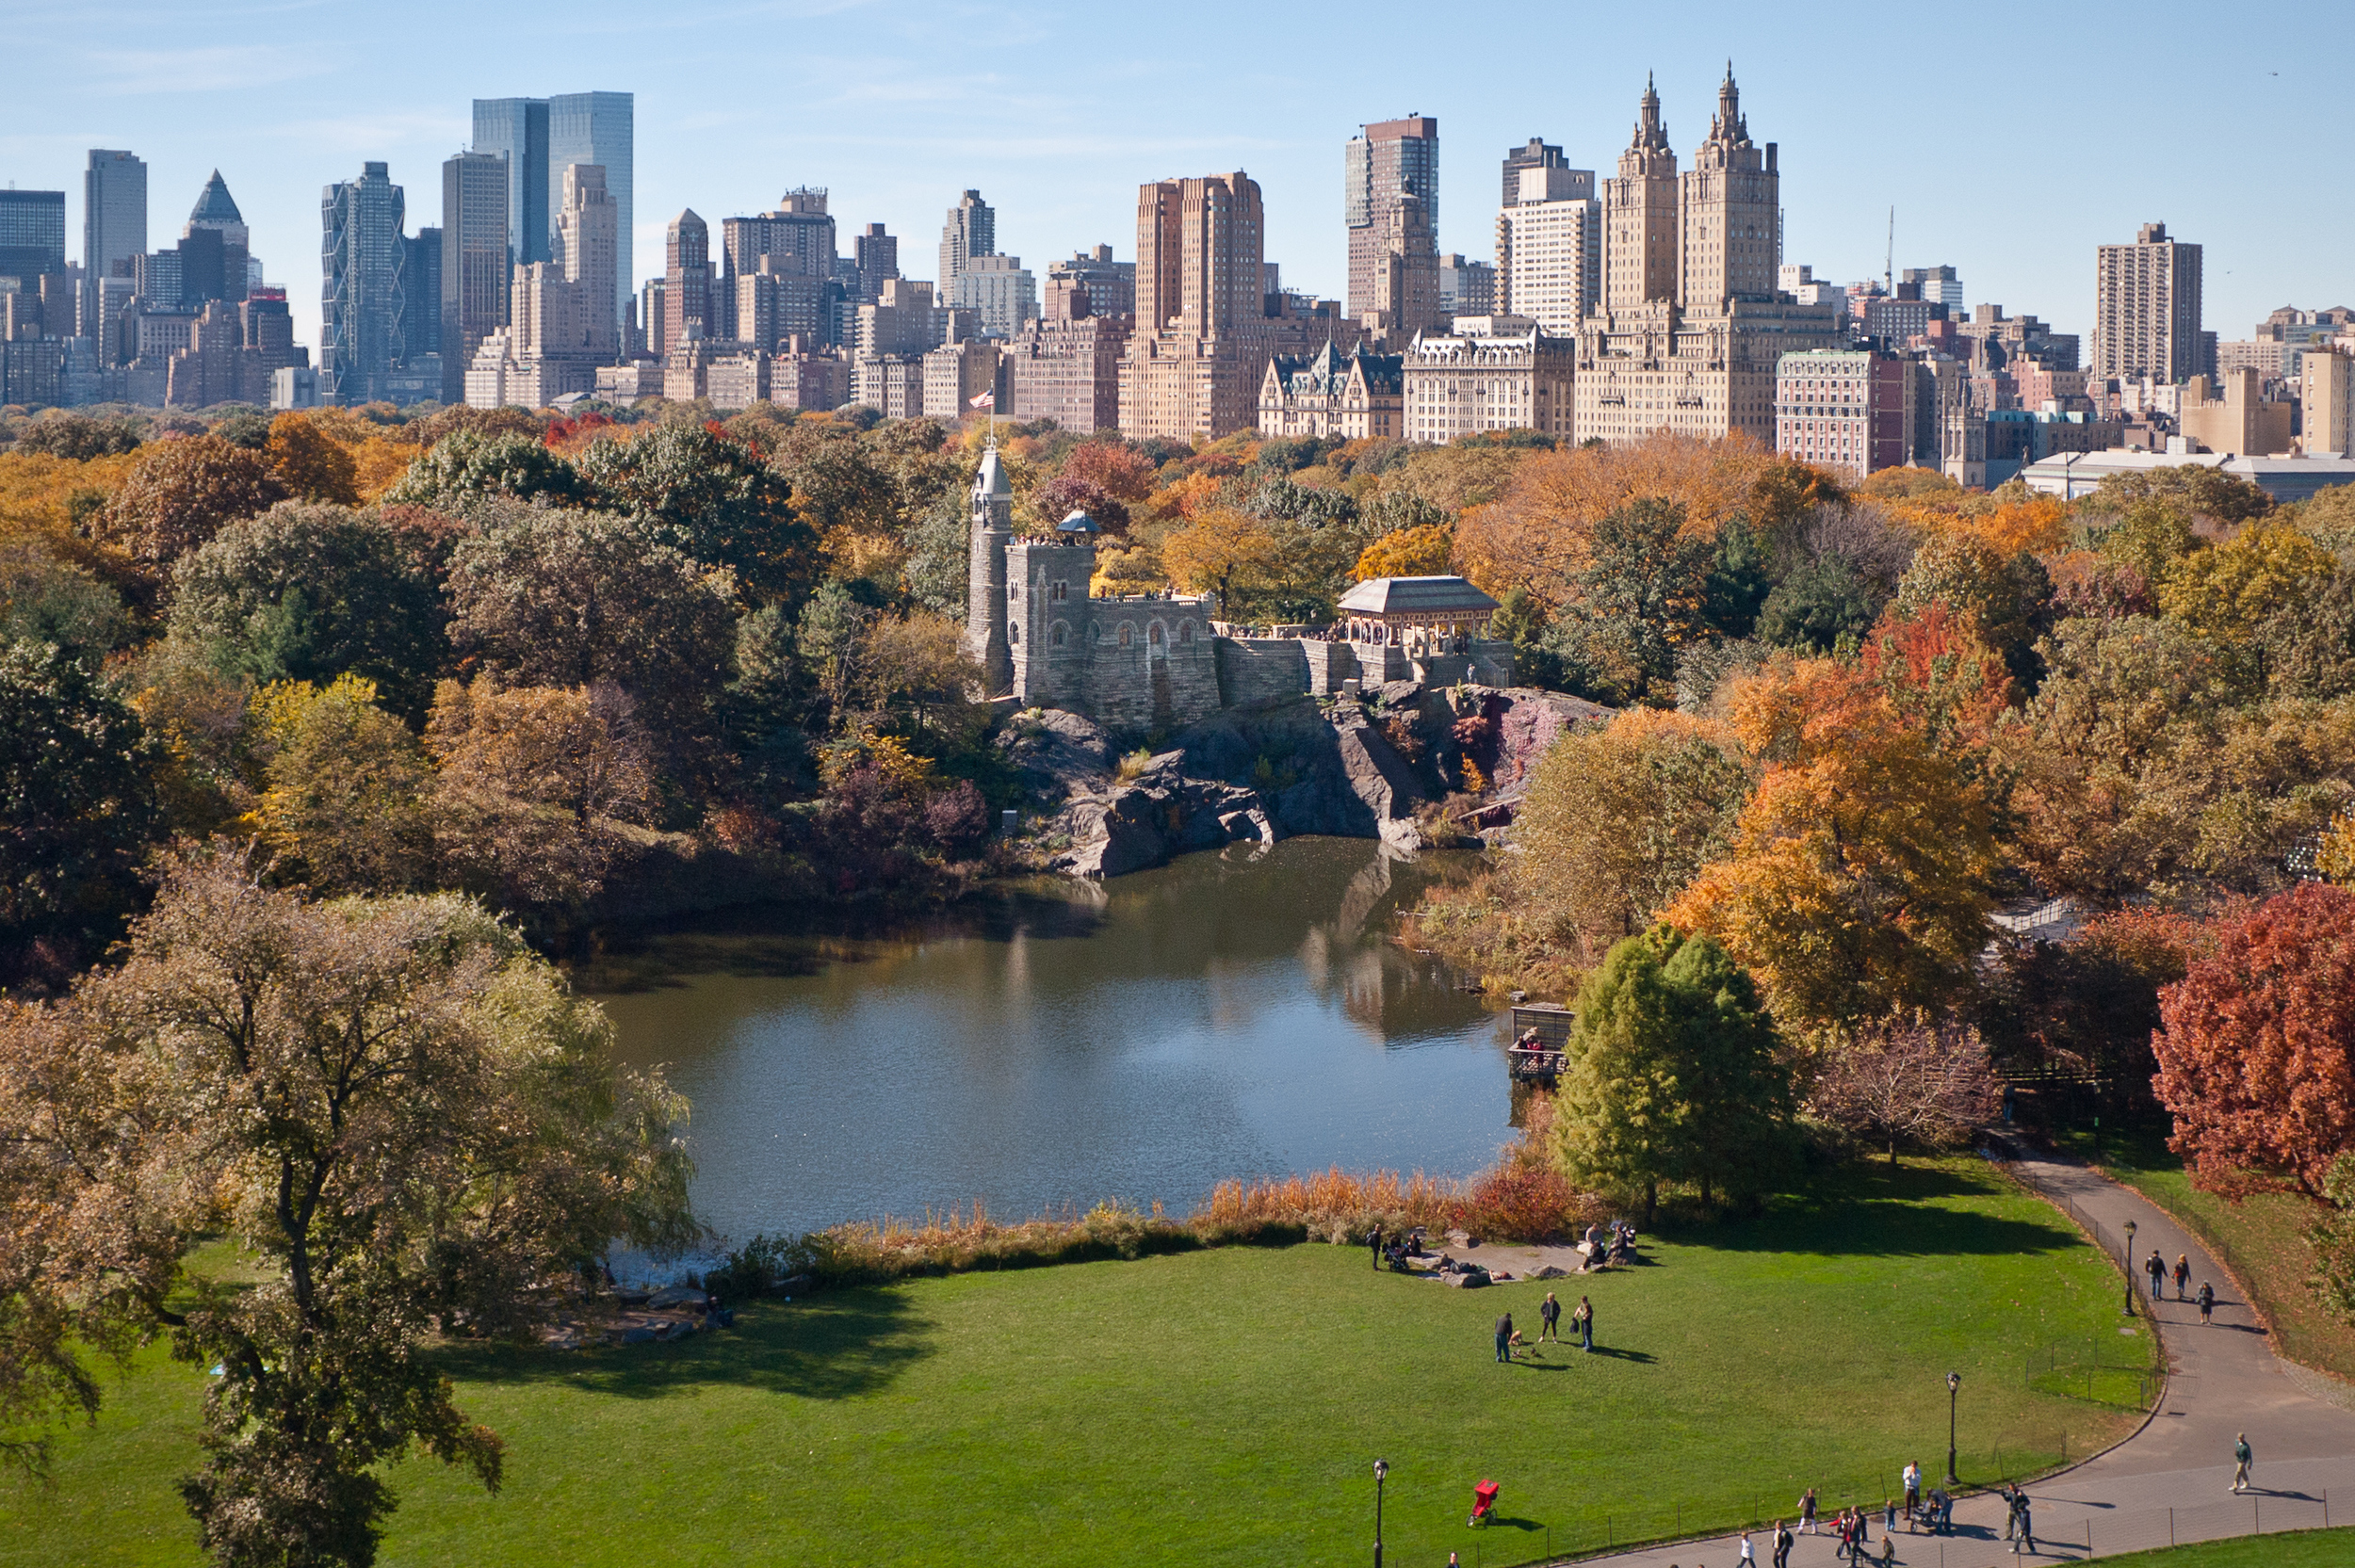 Top things to do in new york city aol travel uk for Best tourist things to do in nyc